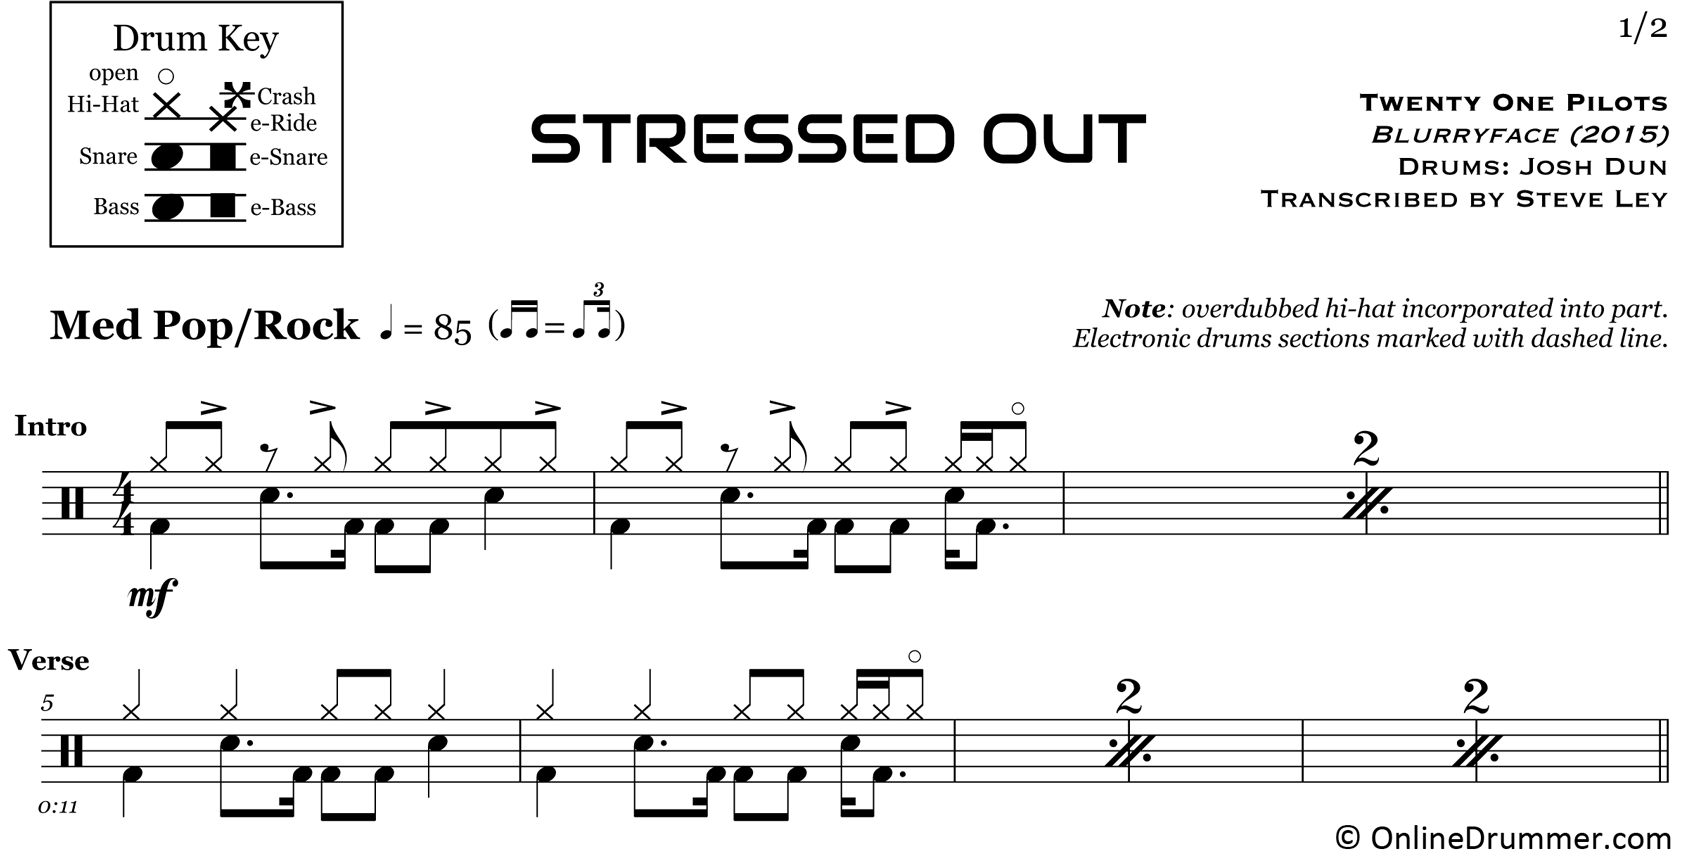 Stressed Out - Twenty One Pilots - Drum Sheet Music